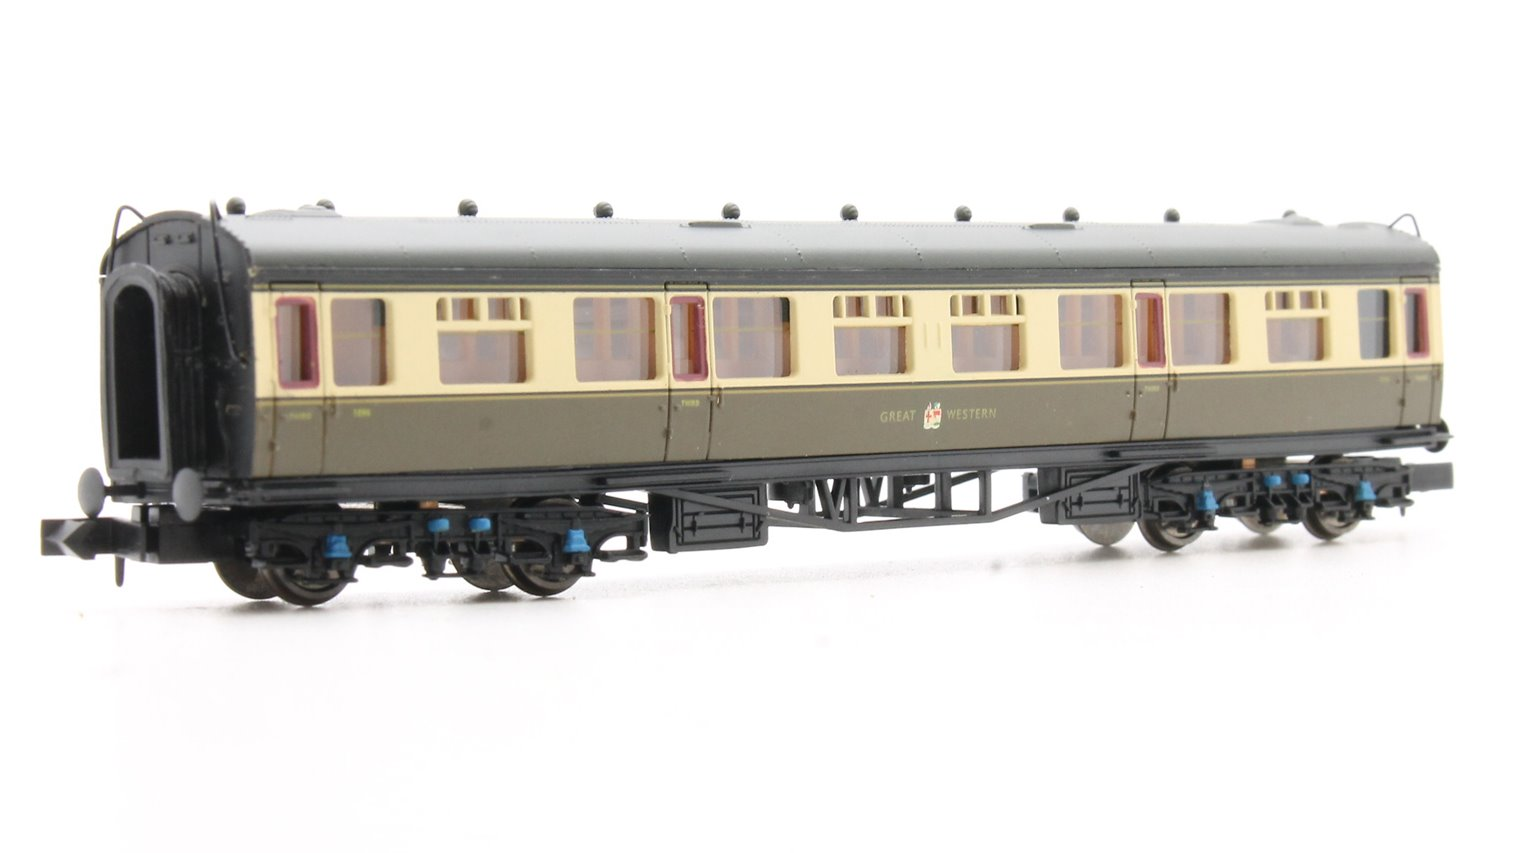 Collett Coach GWR Crest Chocolate & Cream 3rd Class 1096